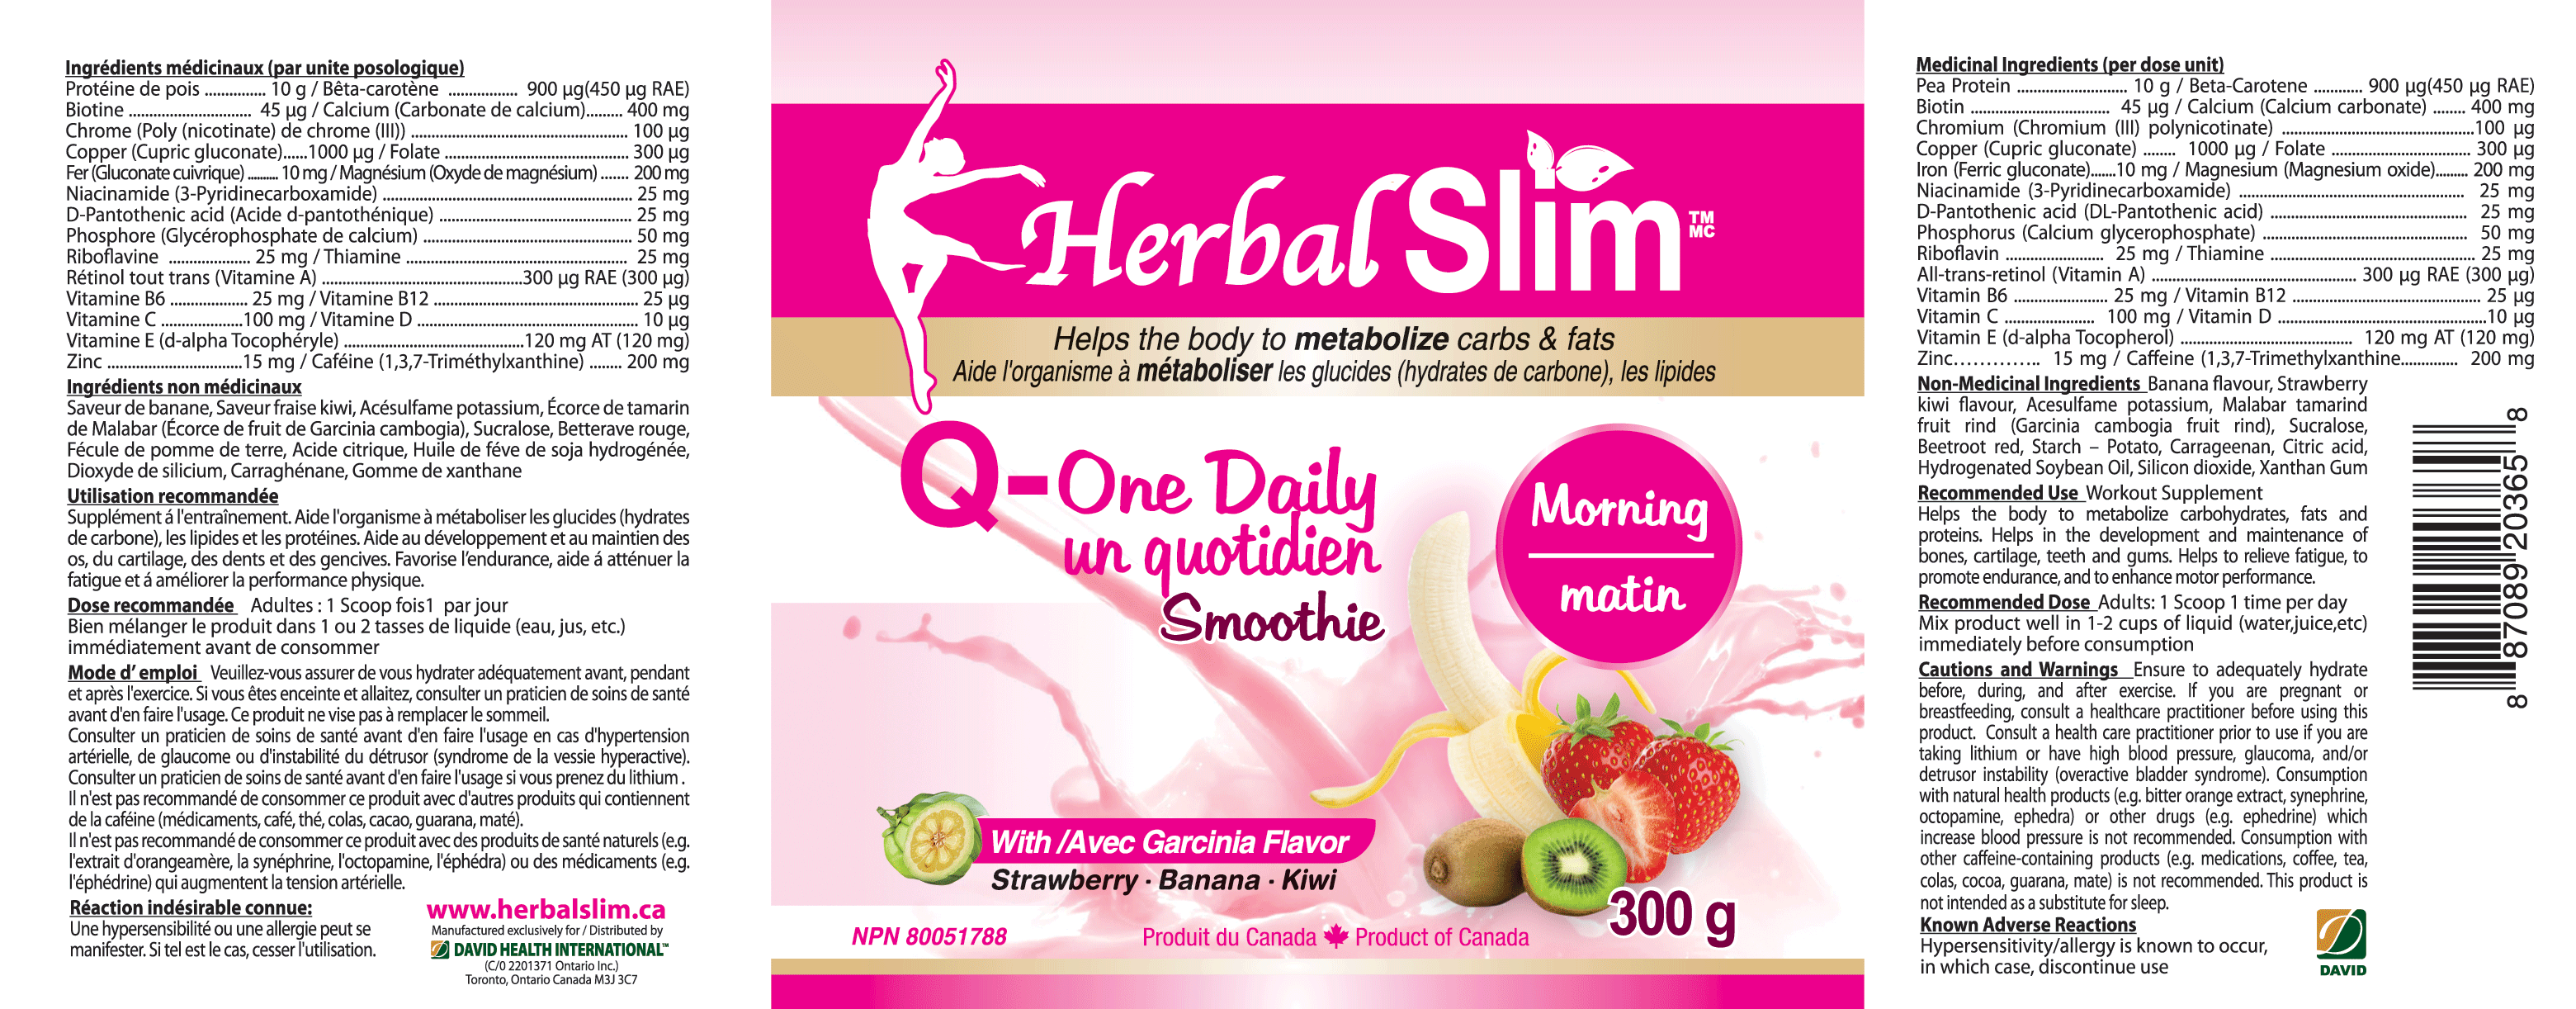 Herbal SLIM Q-ONE DAILY SMOOTHIE